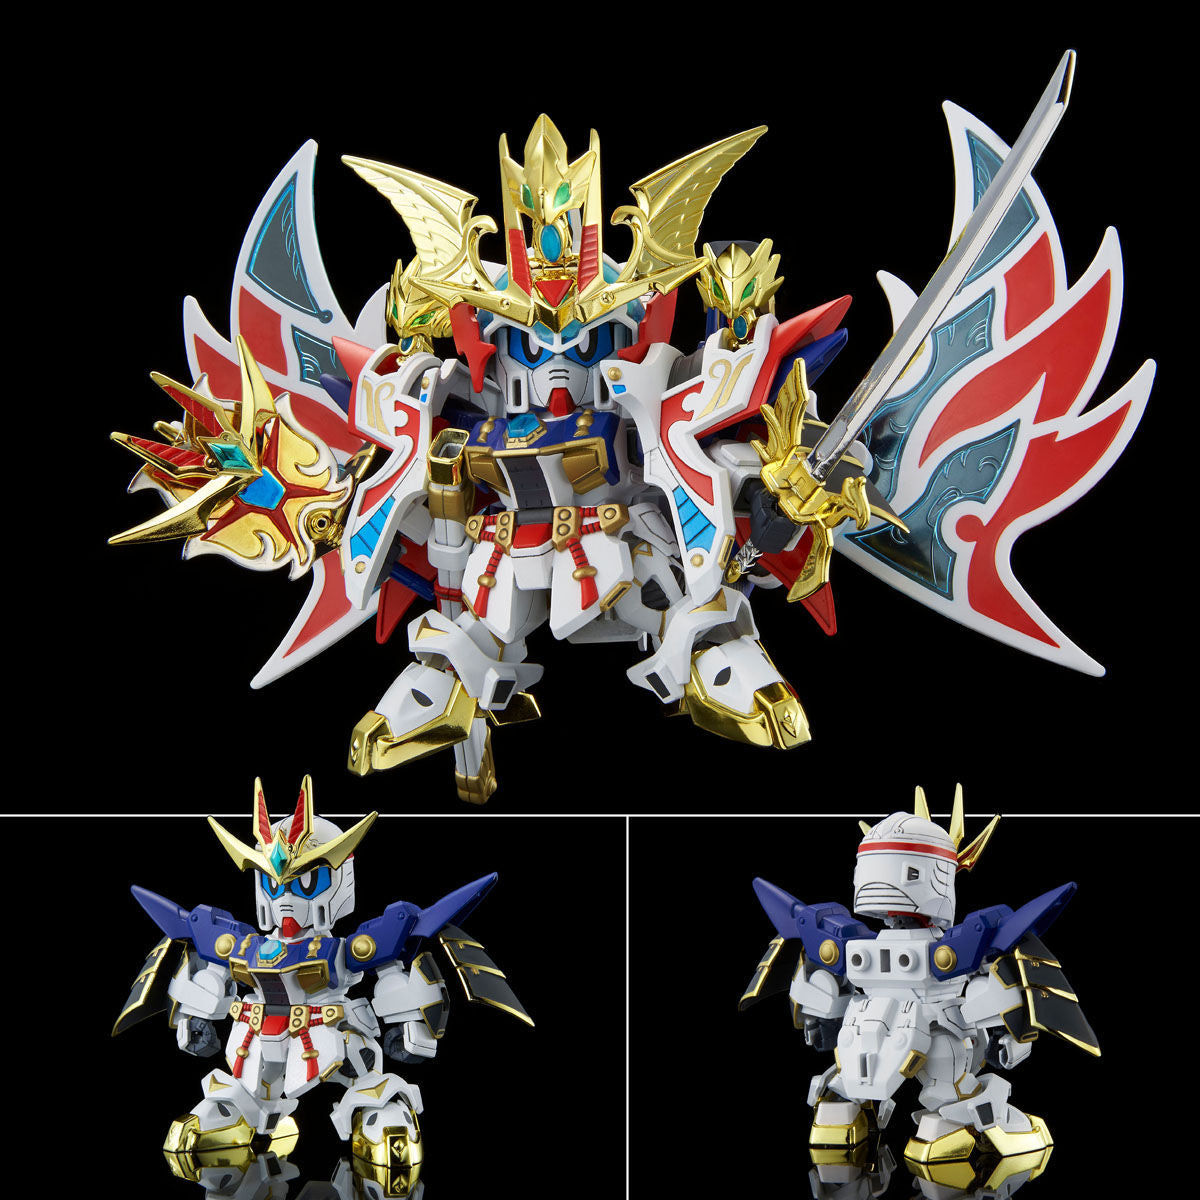 P-BANDAI: SD LEGEND BB SHINSEI DAI SHOGUN [End of March 2020]